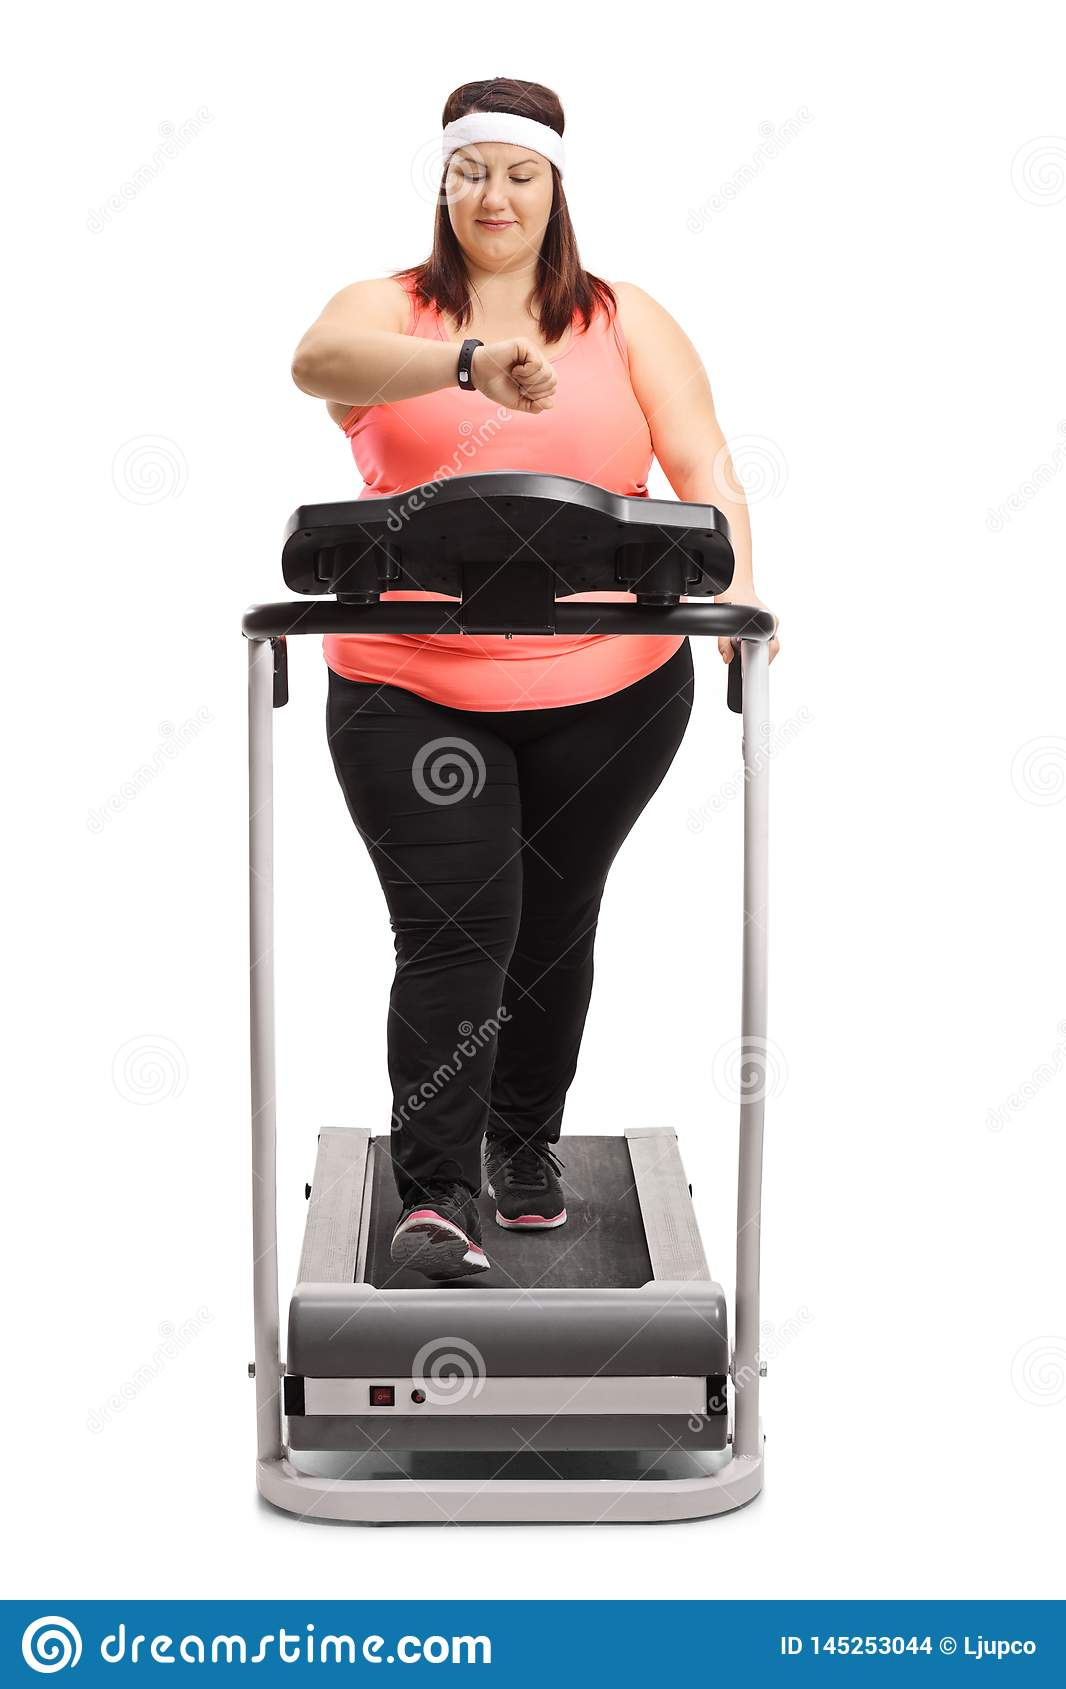 Chubby woman on a treadmill checking her fitness band